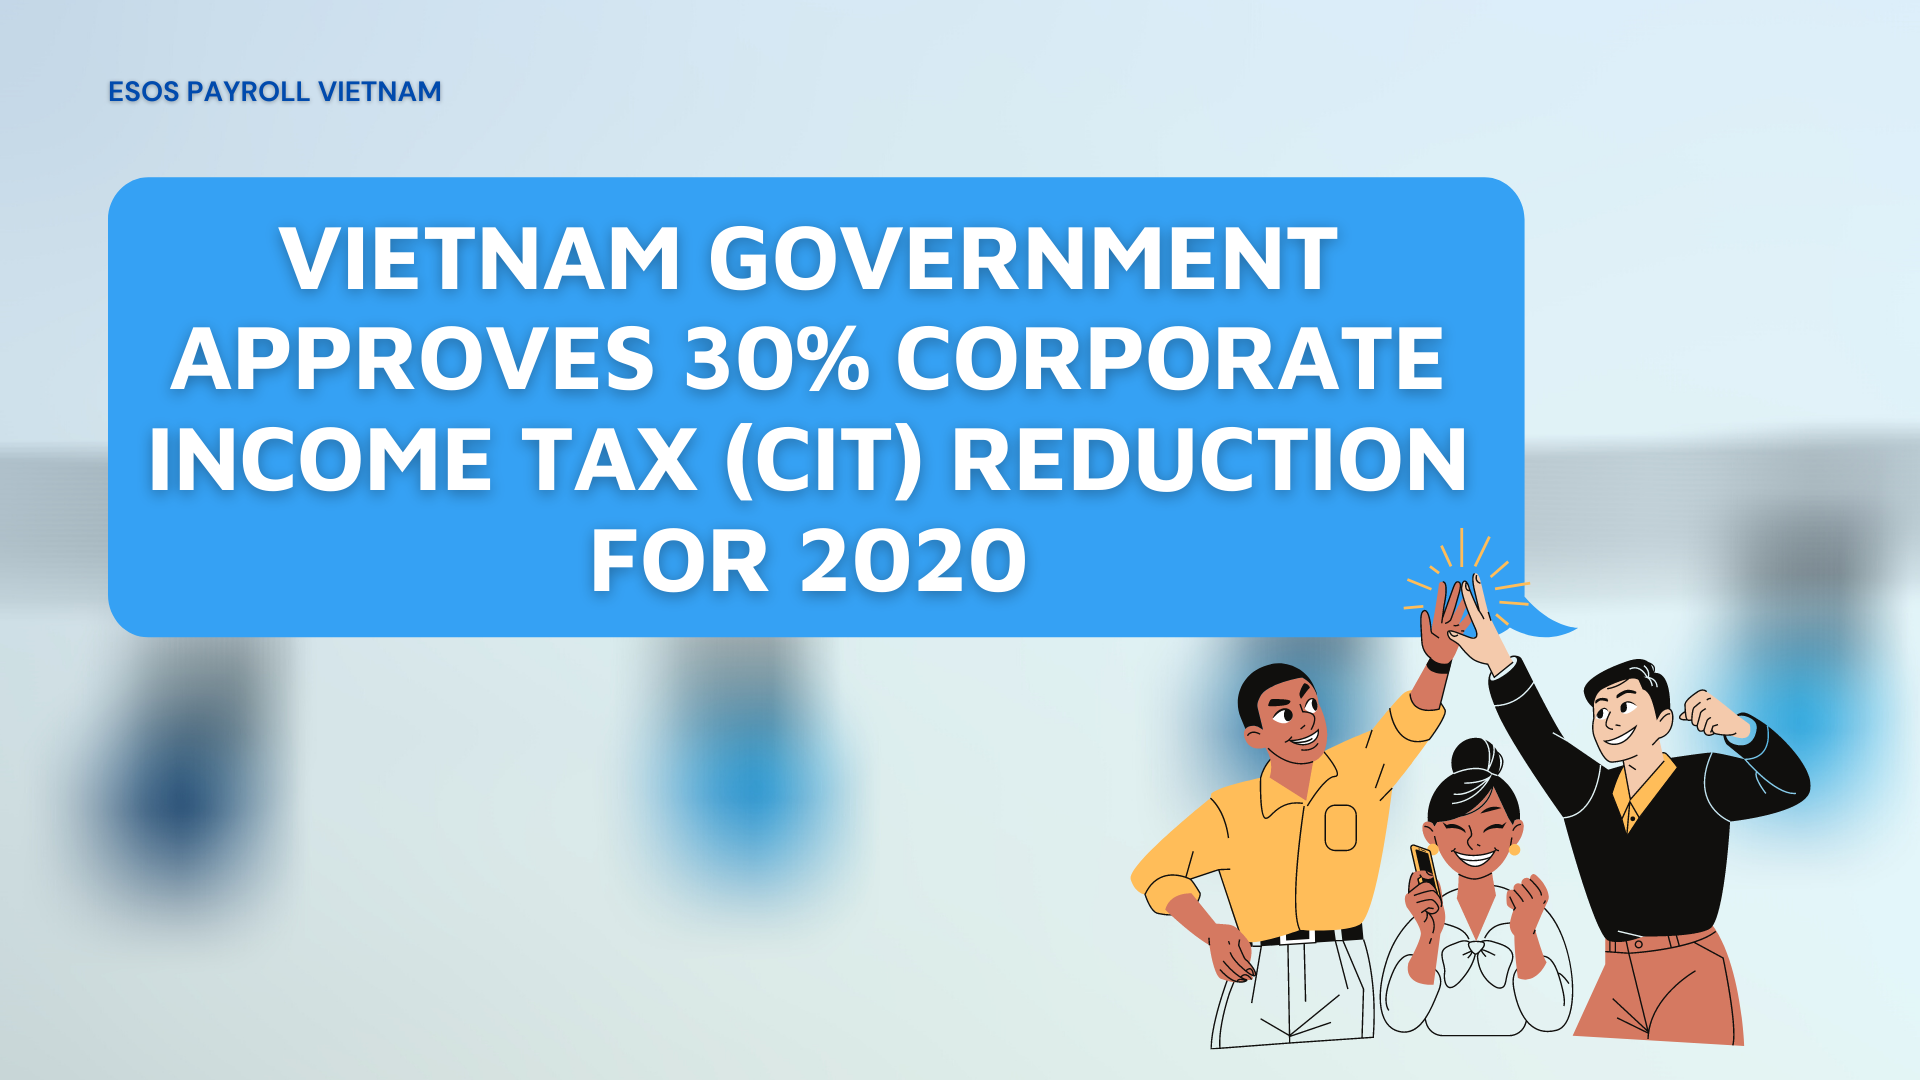 The Government hereby promulgates the Decree on detailing the implementation of the National Assembly's Resolution No. 116/2020/QH14 on the reduction of enterprise income tax payable in 2020 for enterprises, cooperatives, non-business units, and other organizations.